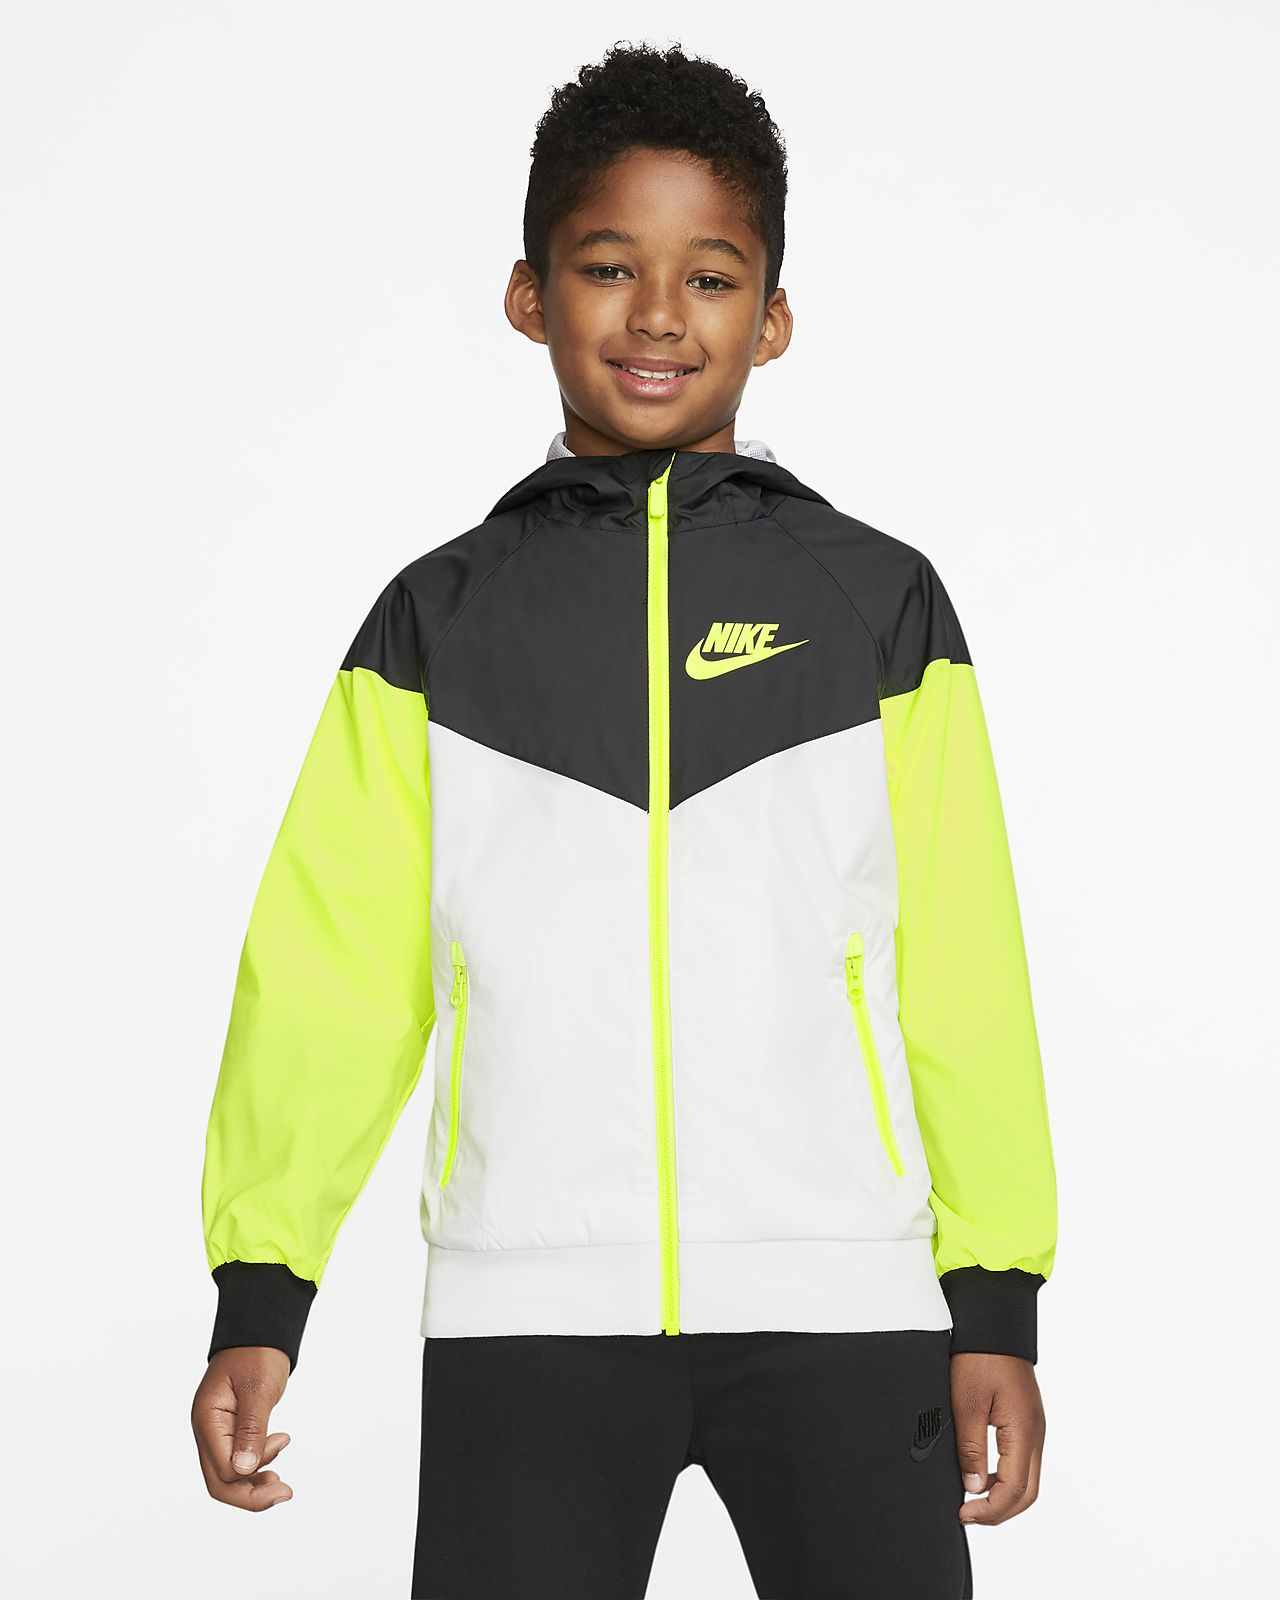 XL boys Nike air max jacket